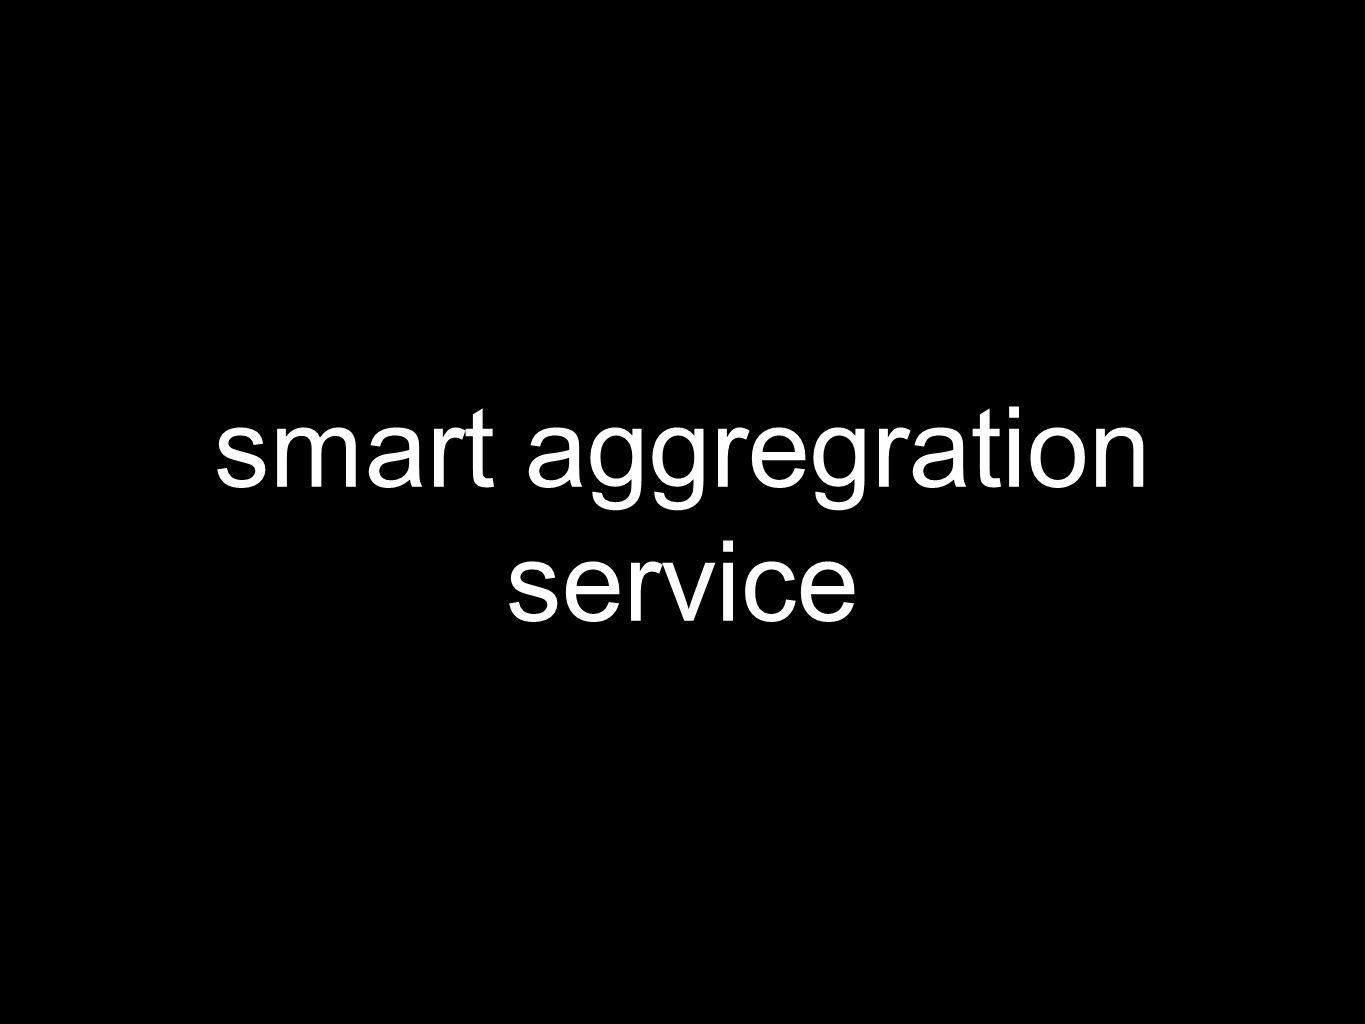 smart aggregration service